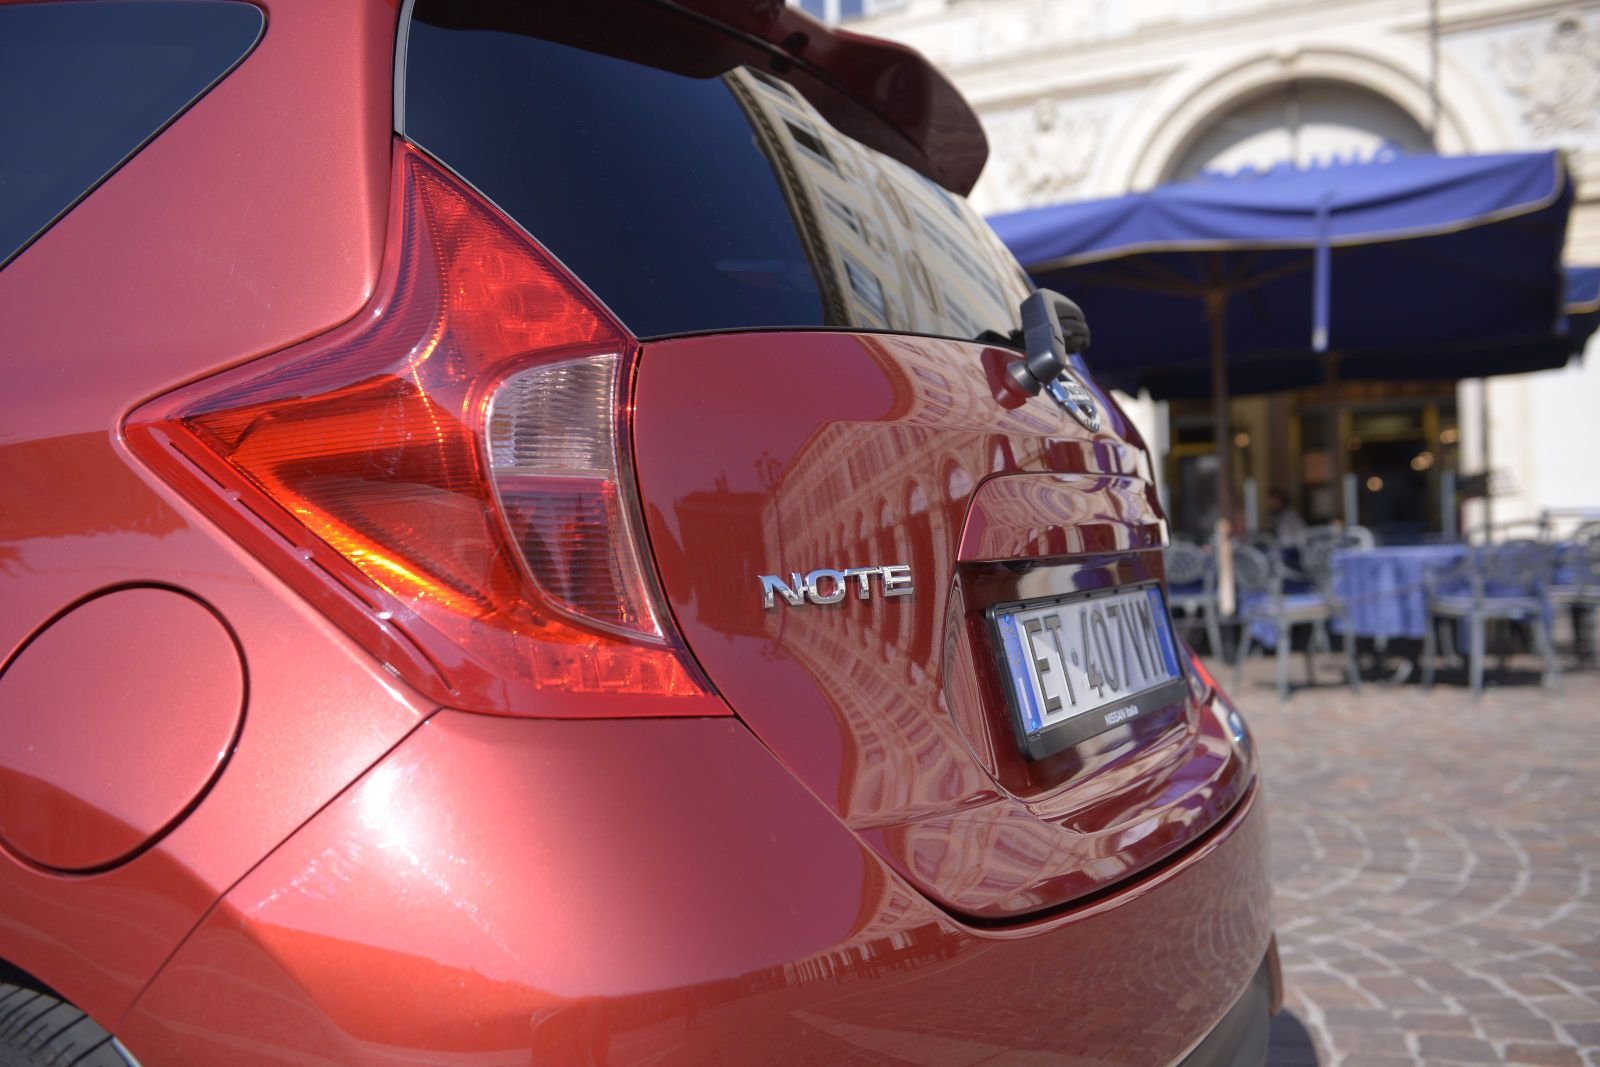 nissan-note-007_01